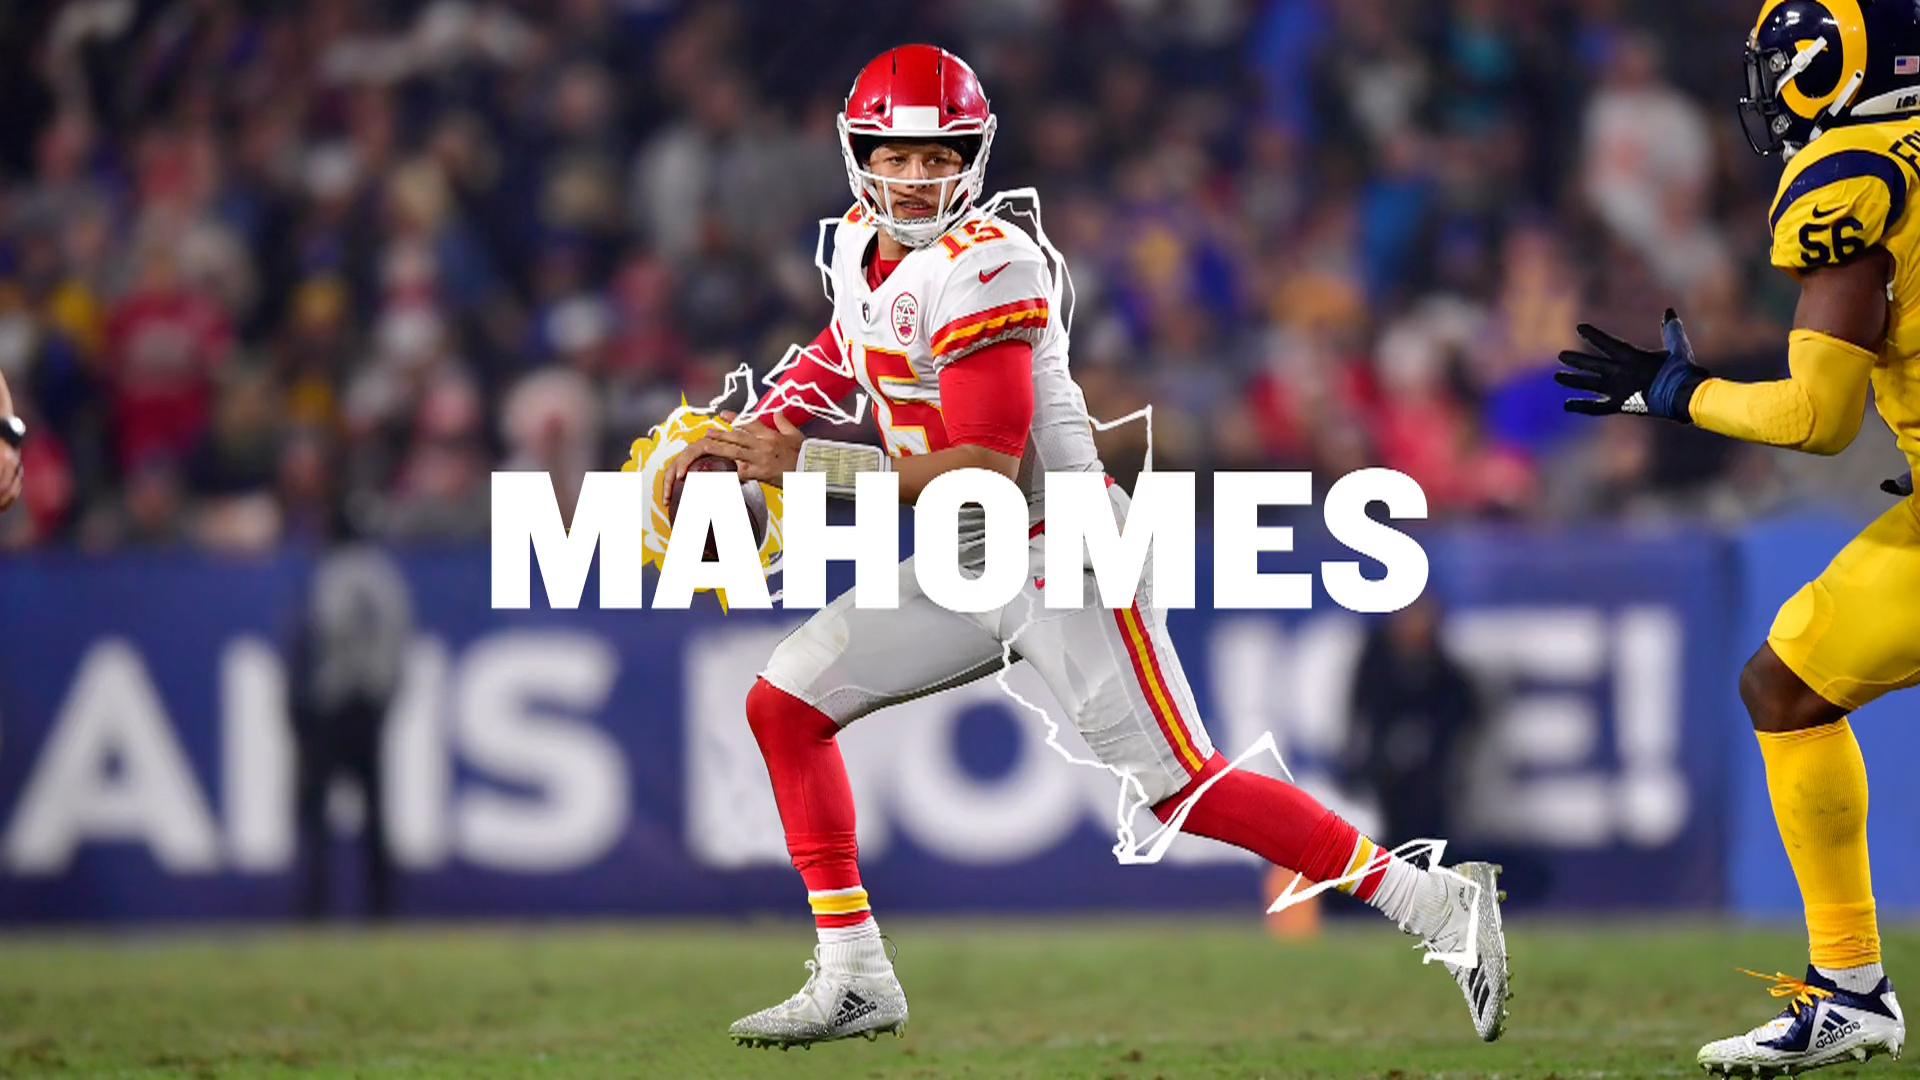 Thumbnail for Friends + Football = ESPN FANTASY (Mahomes)